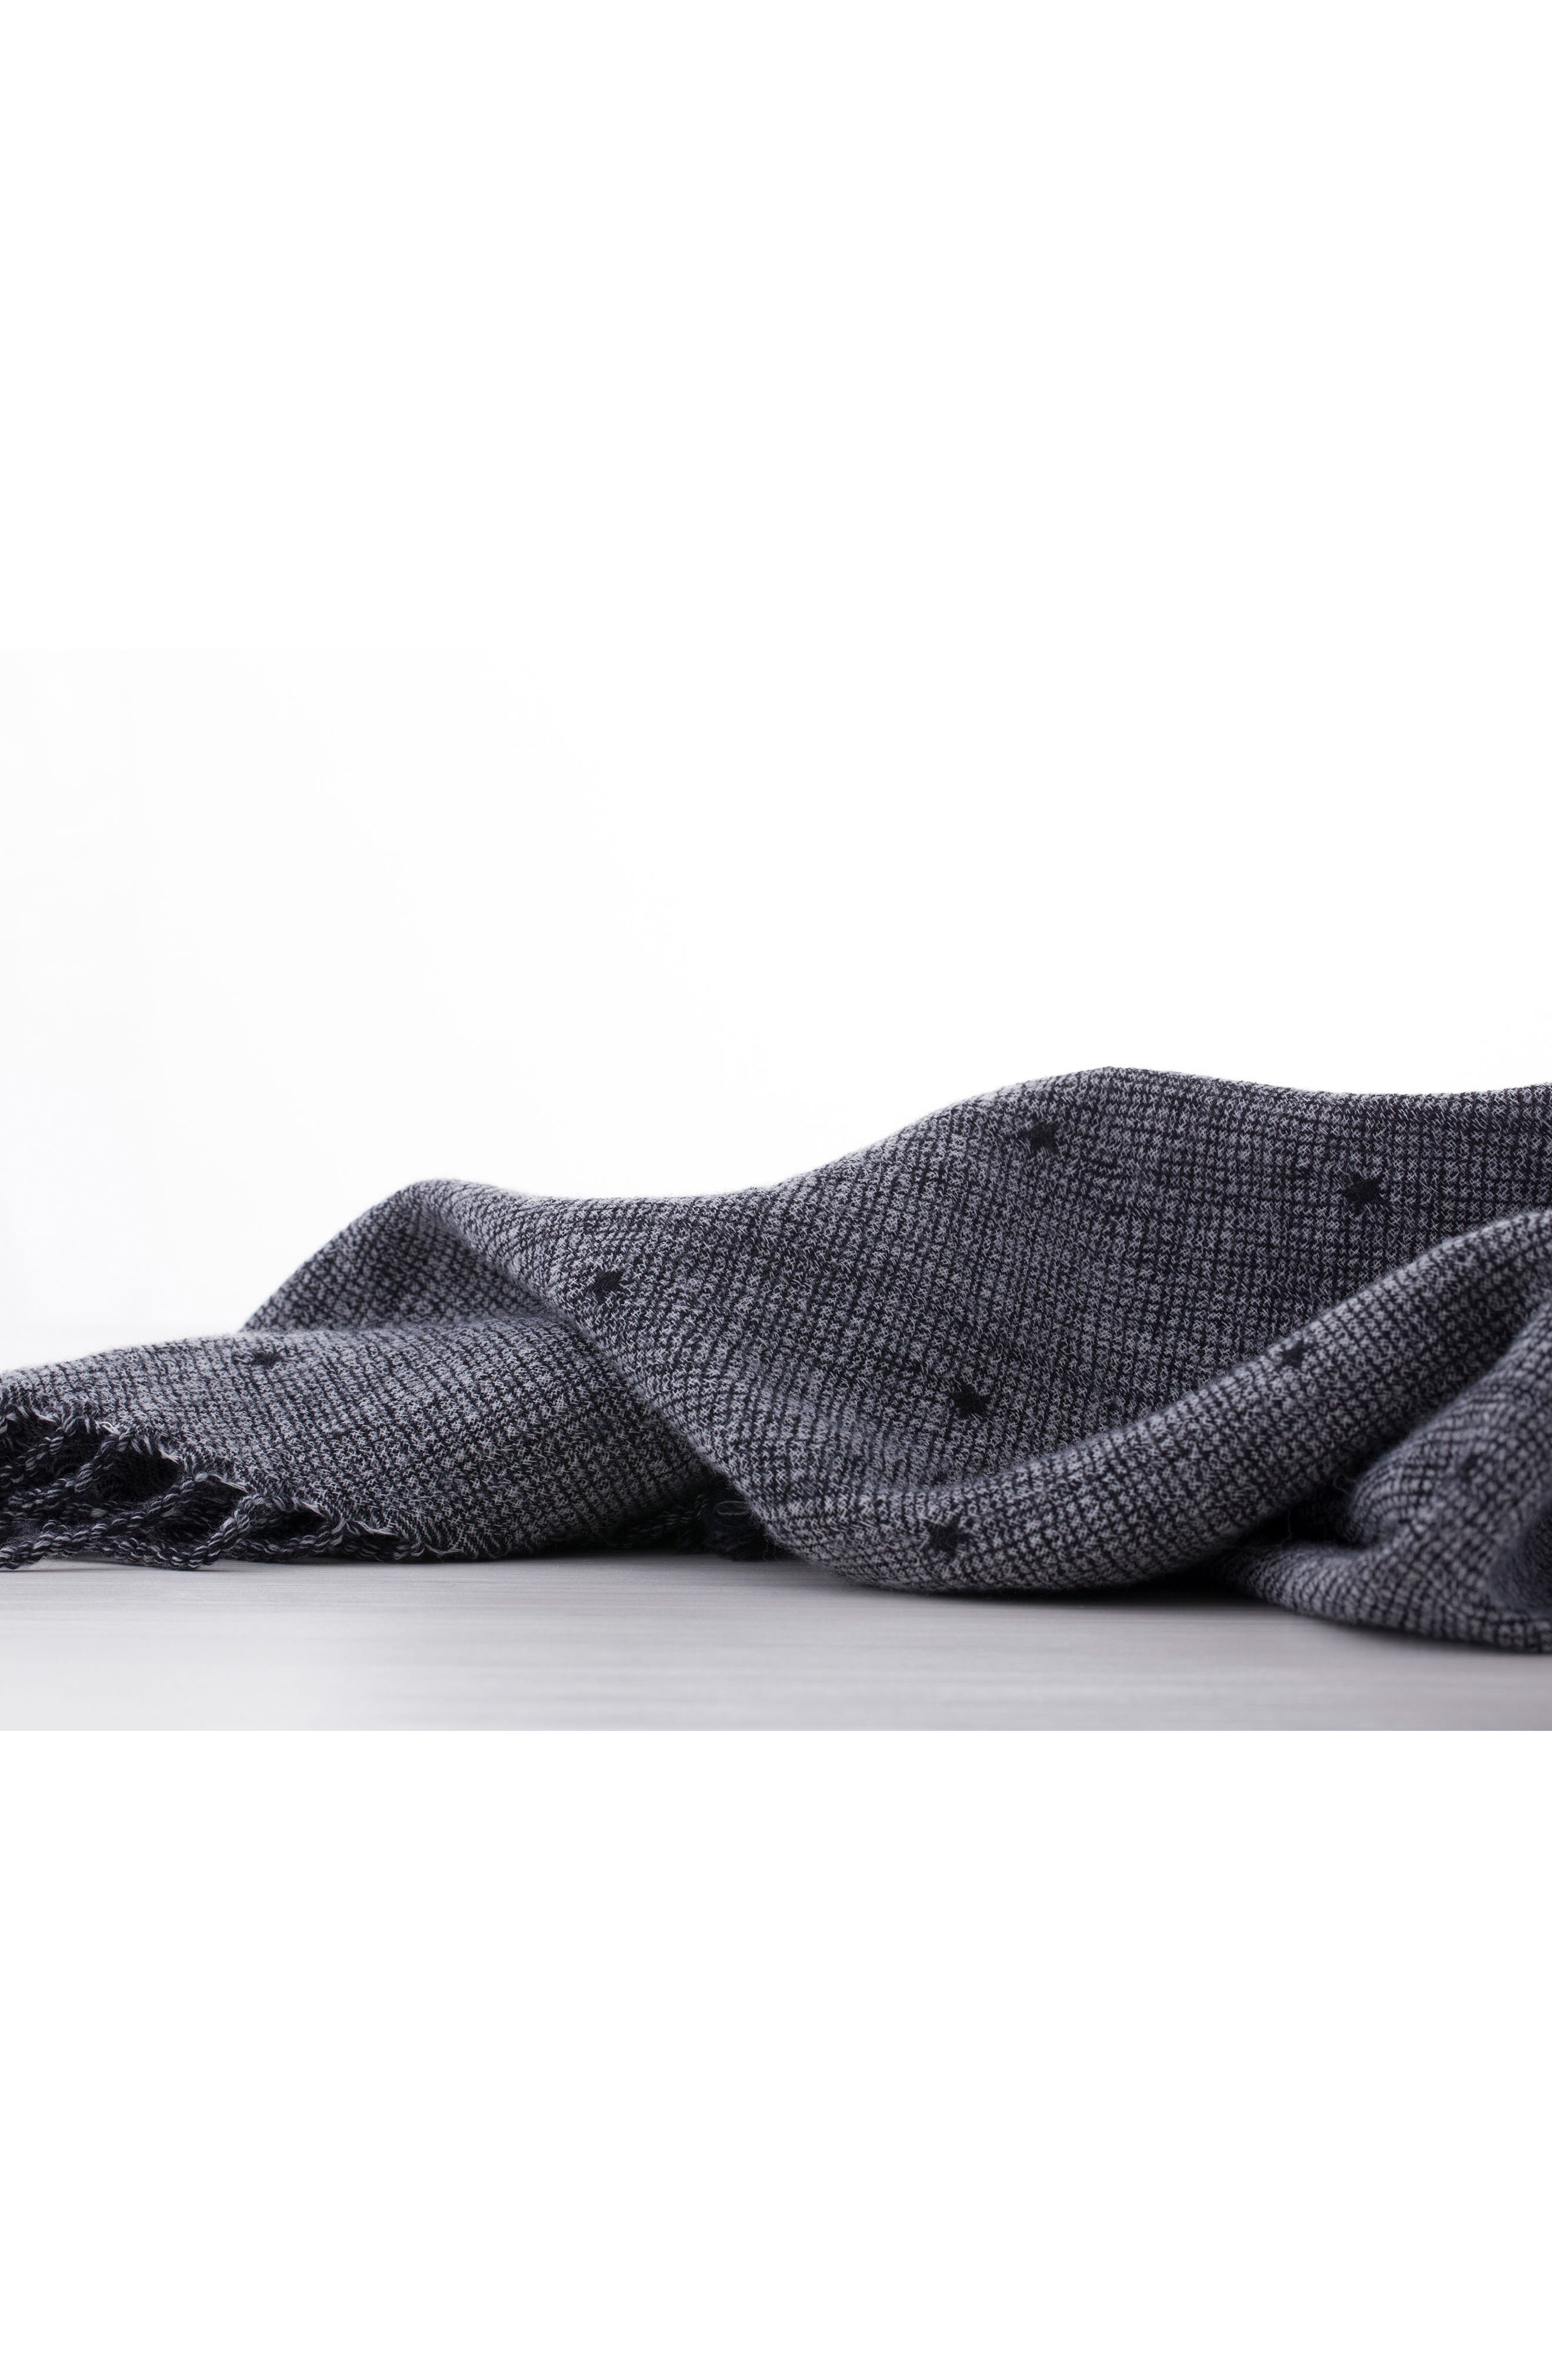 Blackstar Double Face Merino Wool Throw,                             Alternate thumbnail 4, color,                             Blackstar